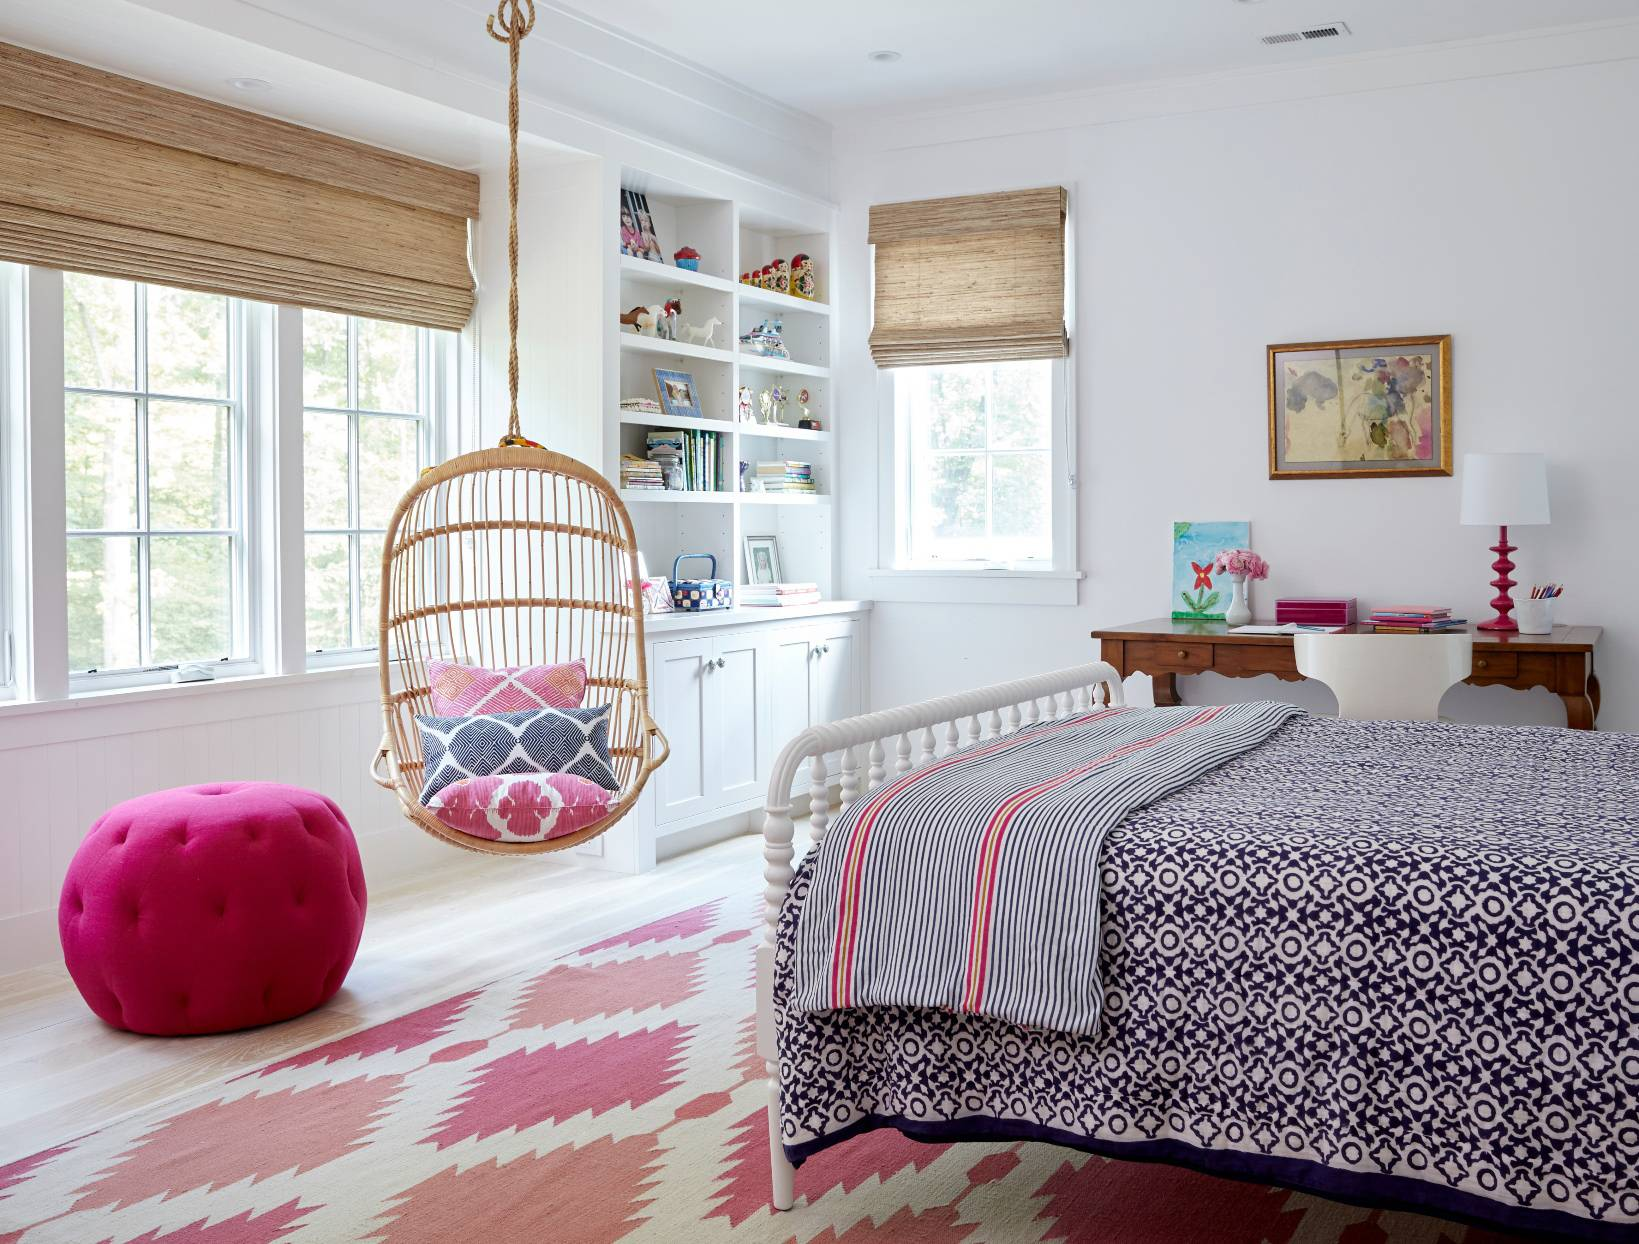 Pink Aesthetic Bedroom Ideas Luxury 15 Cozy Bedrooms that Nail the Farmhouse Aesthetic